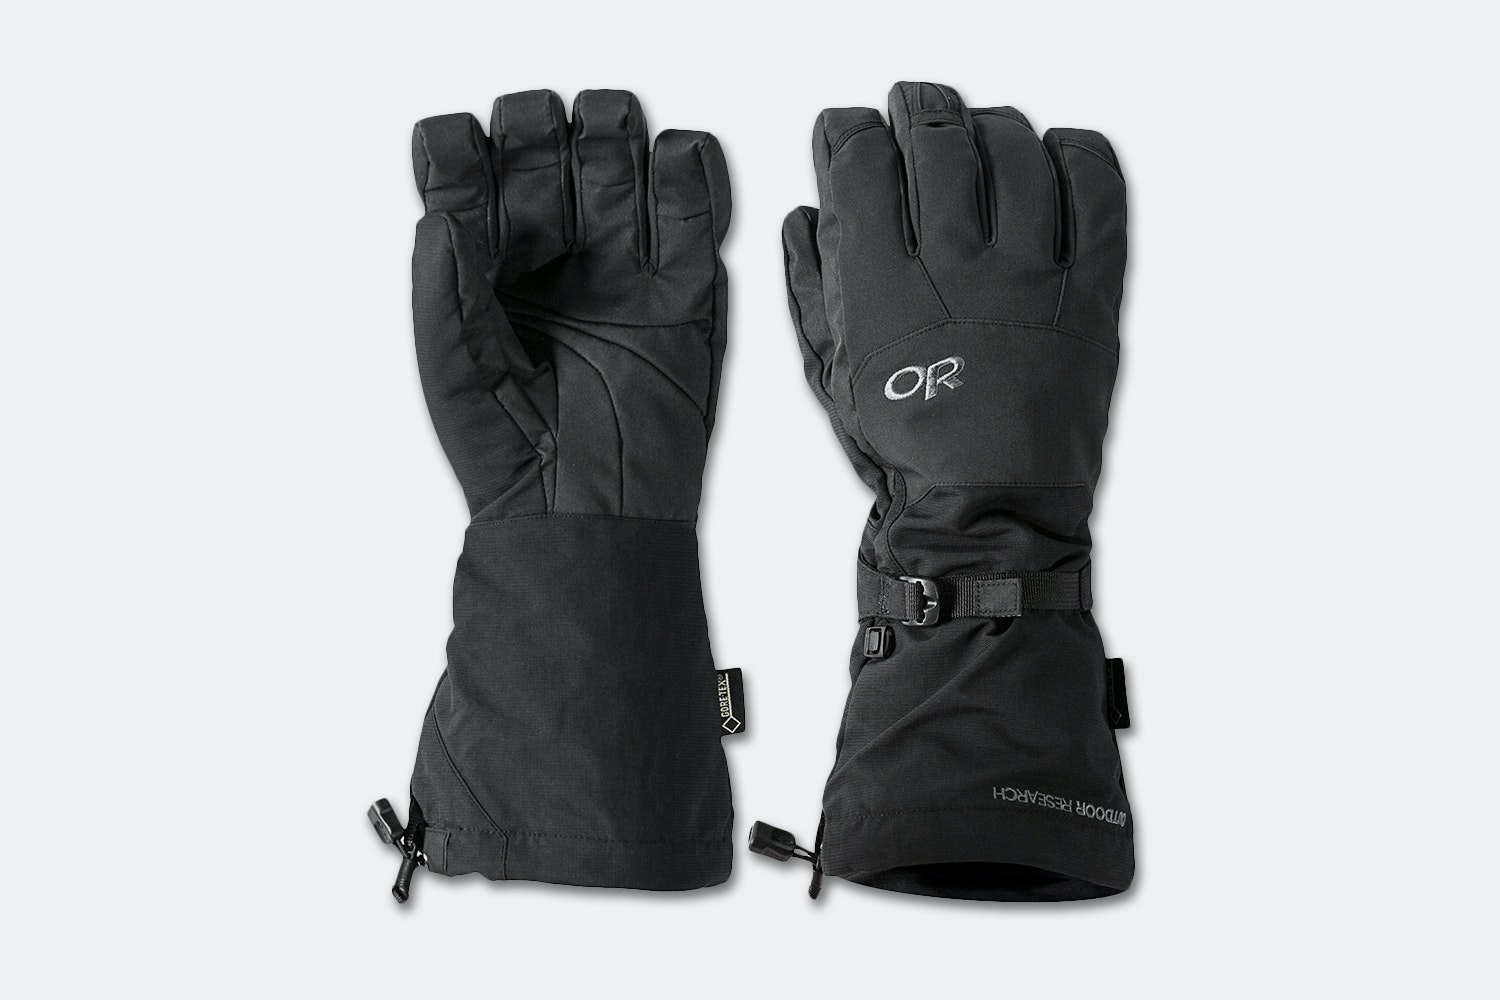 Outdoor Research Alti Gloves / Mitts